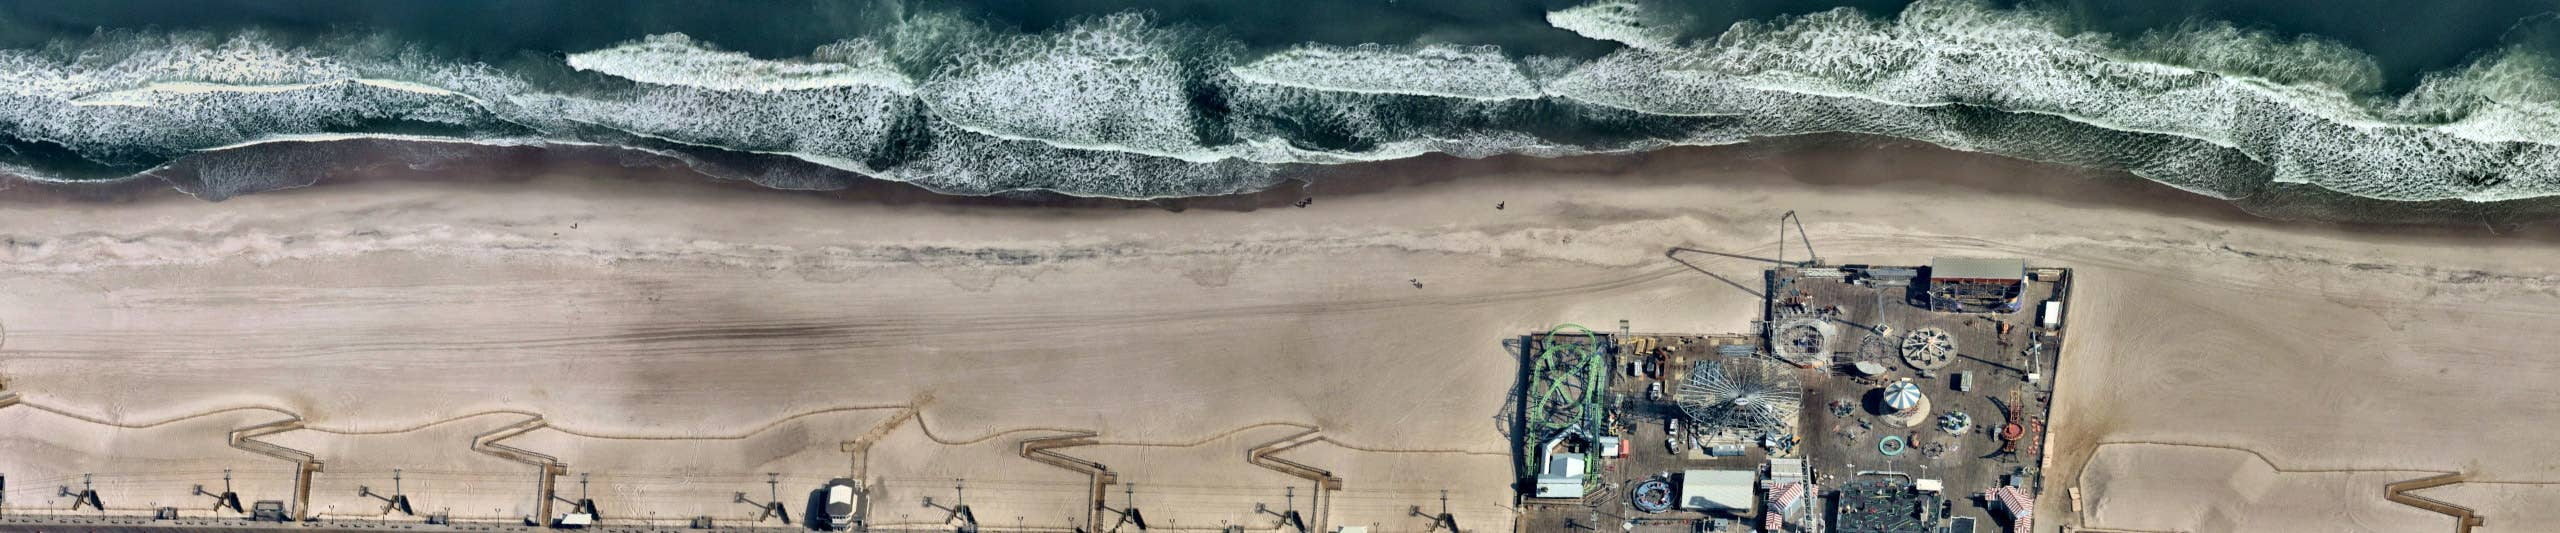 Aerial view, Boardwalk at Seaside Heights, NJ -- 11 March 2019